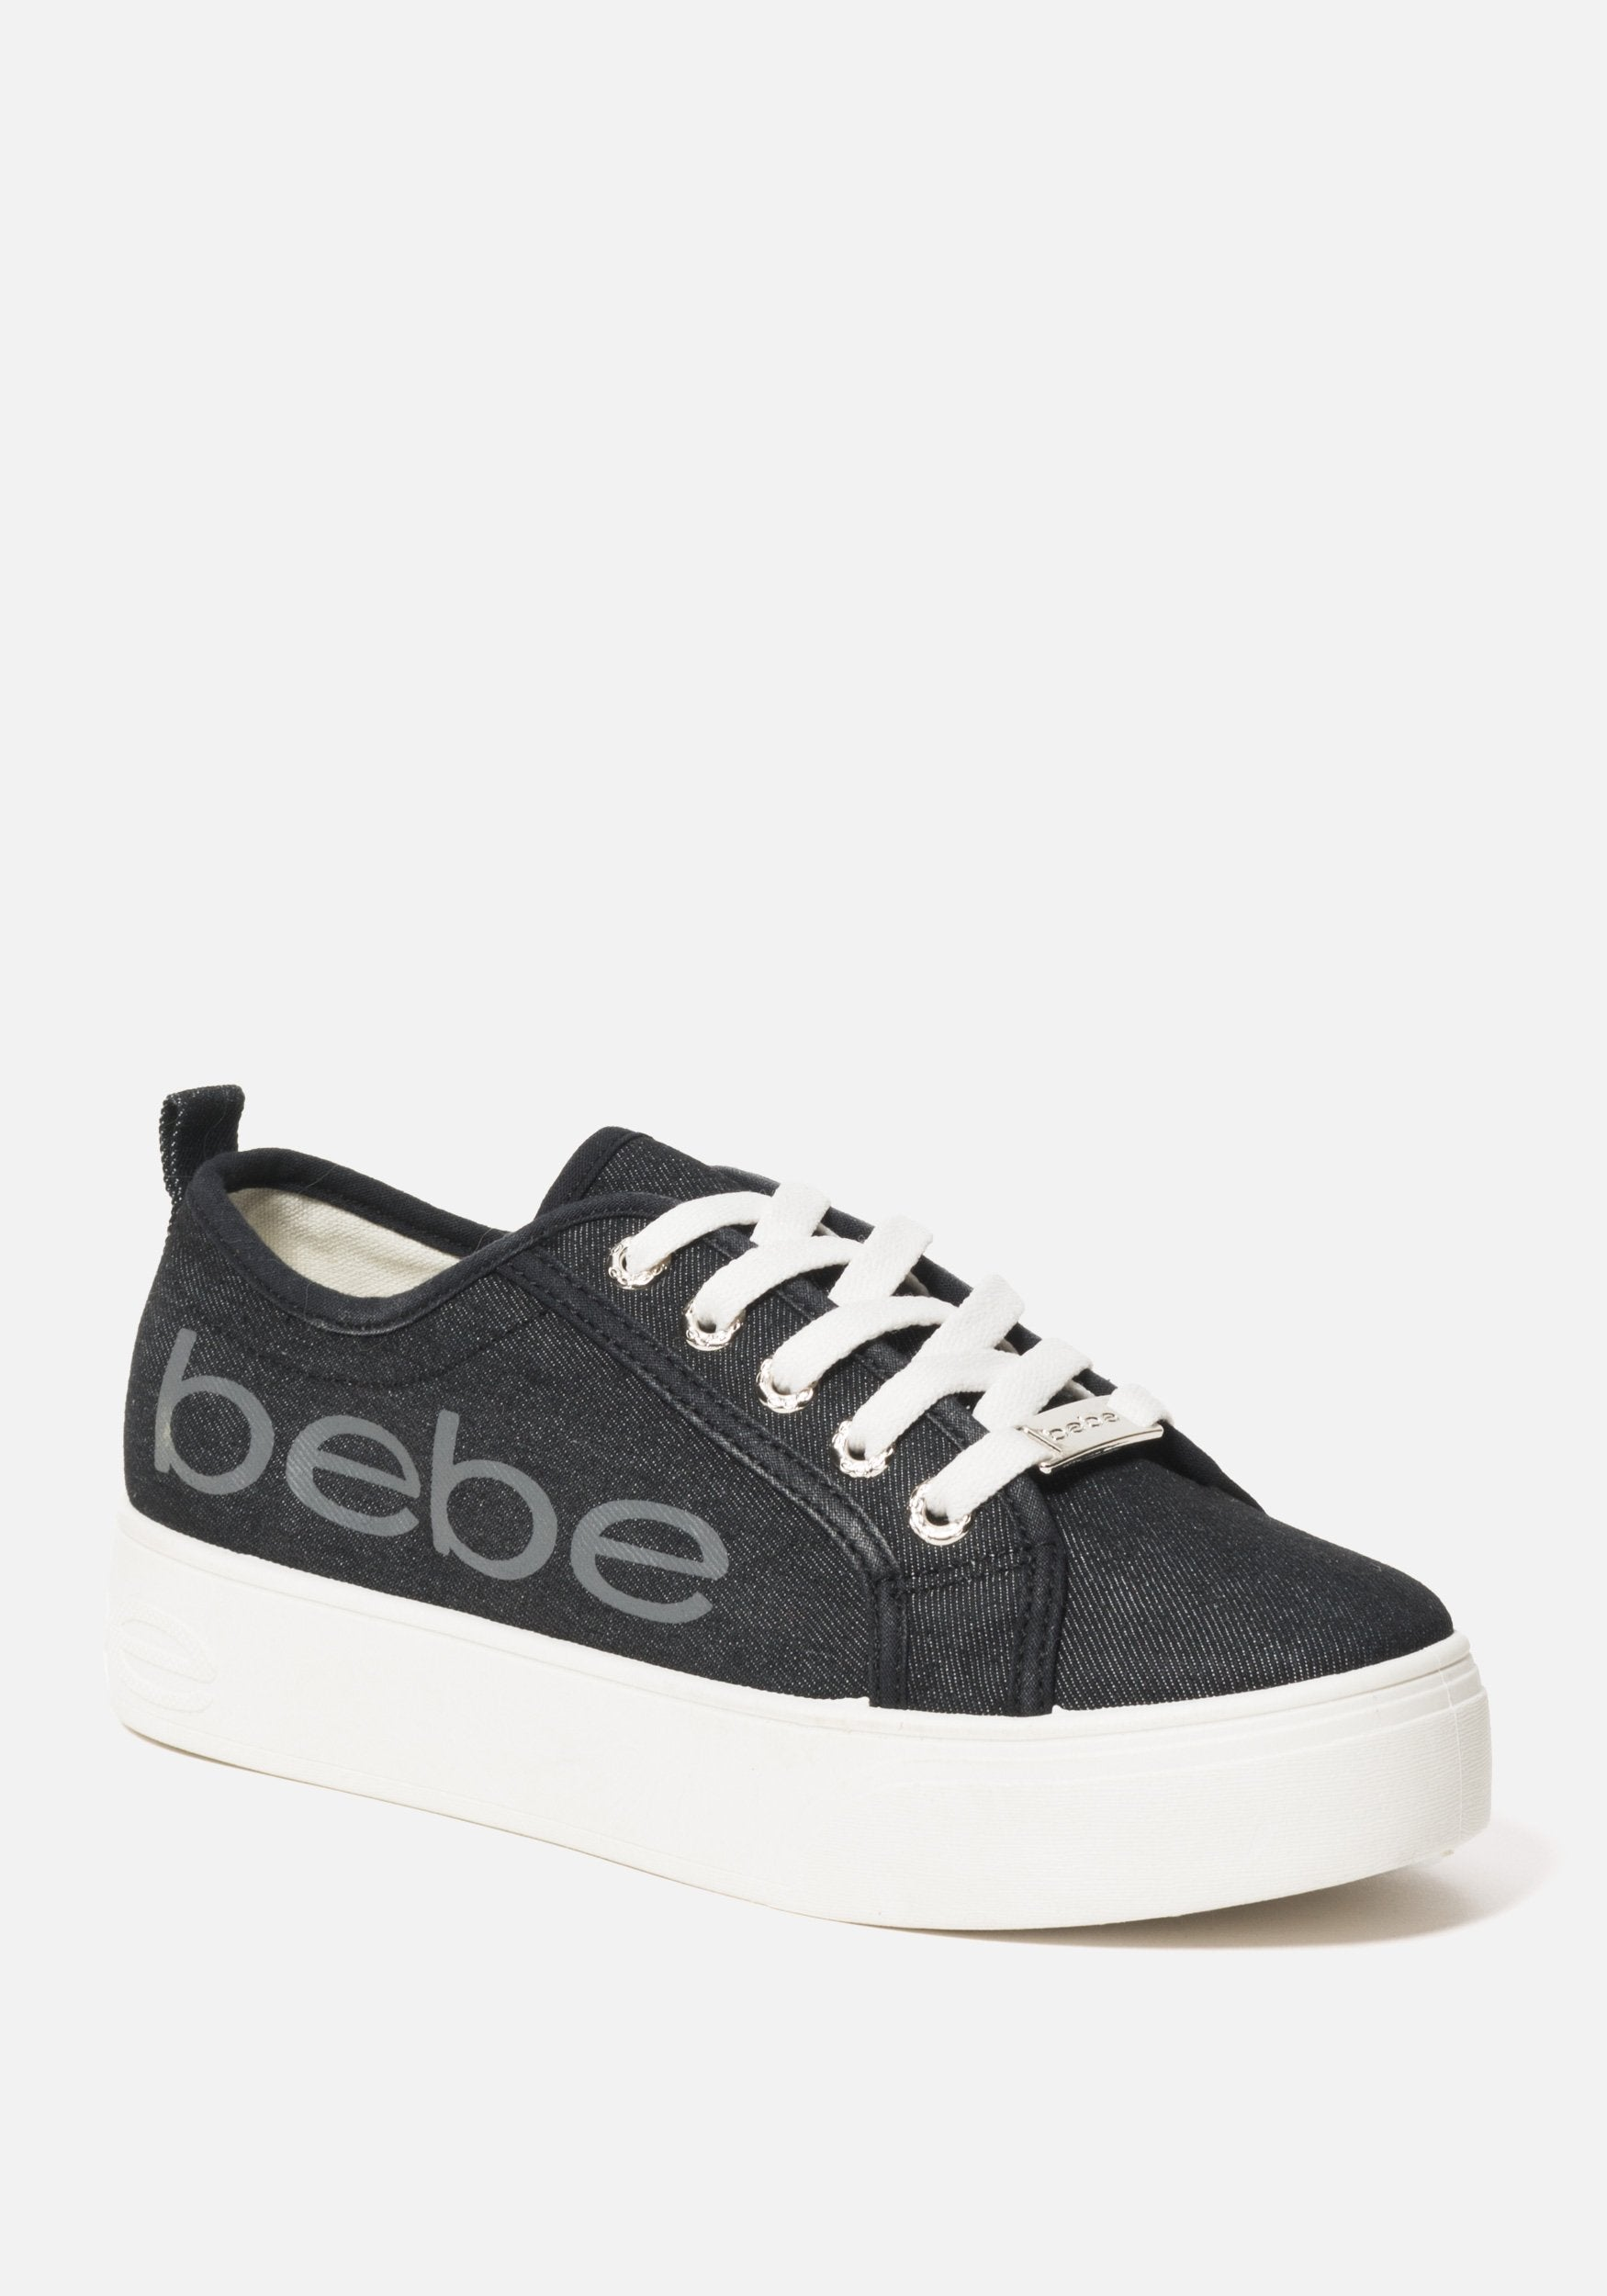 Bebe Women's Destini Platform Sneakers, Size 6 in BLACK DENIM Synthetic